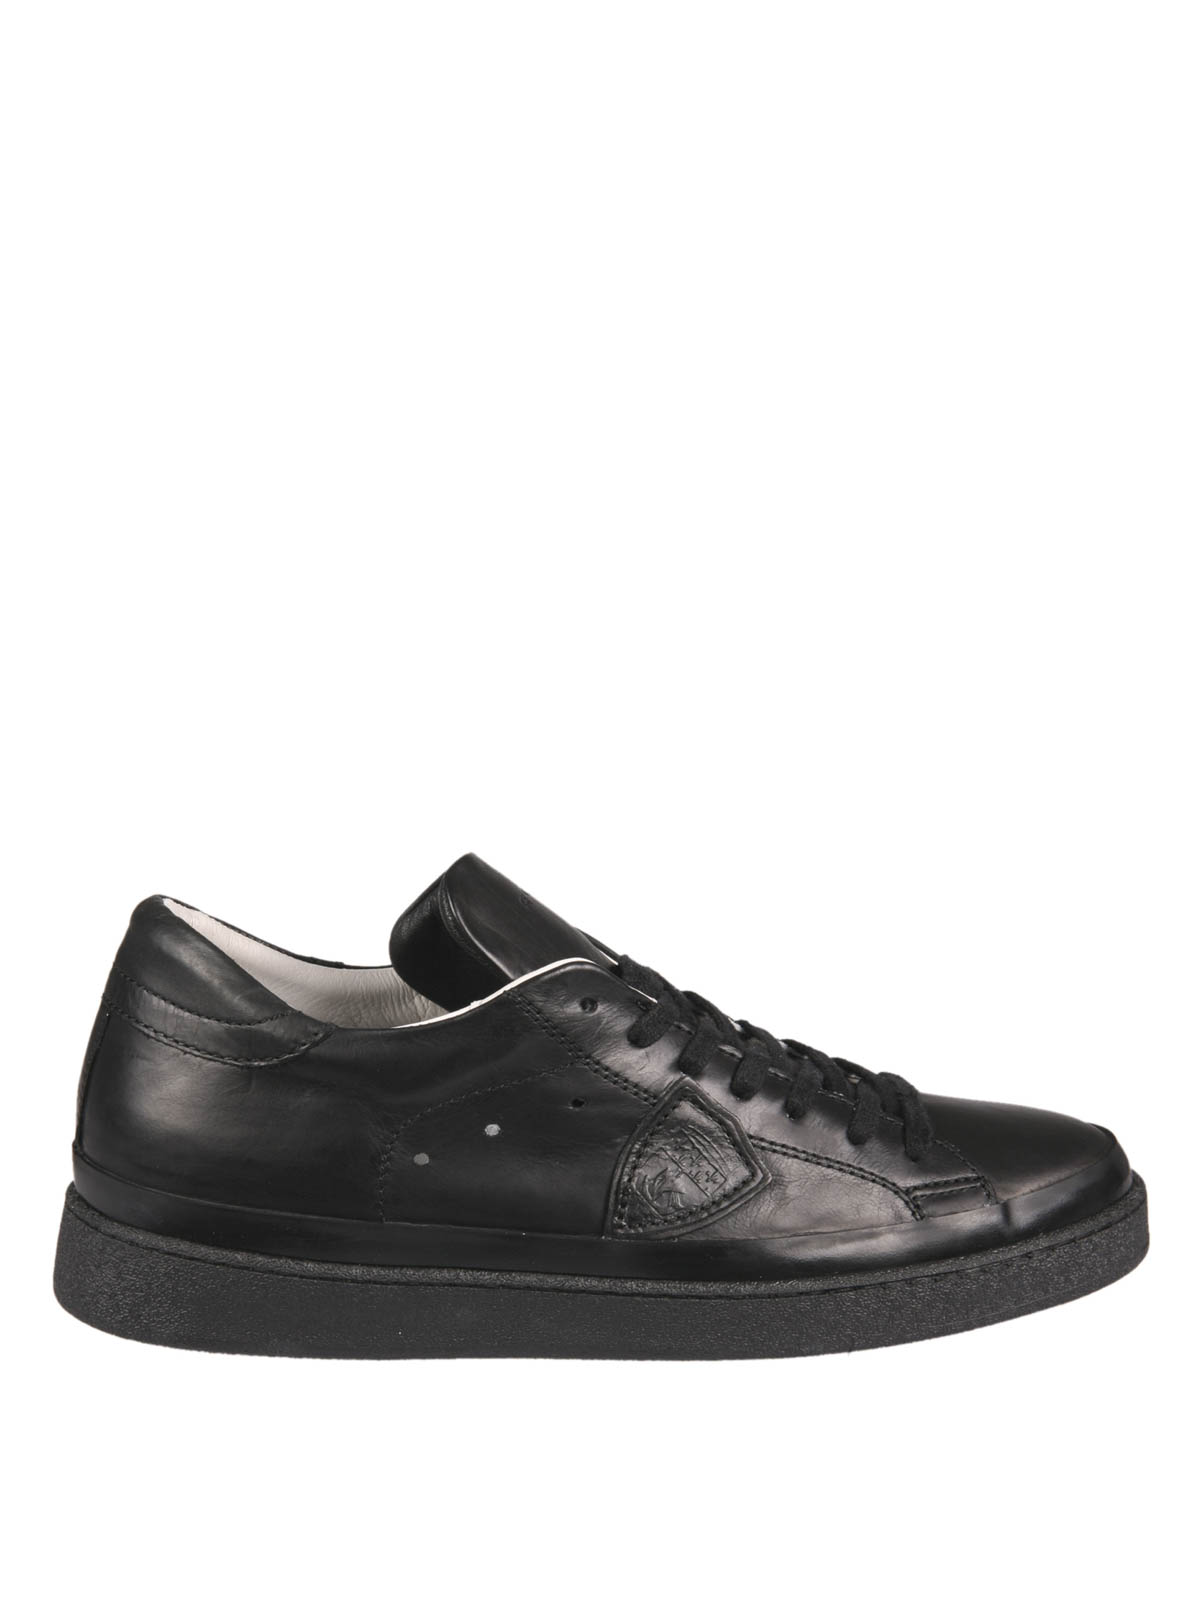 leather low top sneakers by philippe model trainers ikrix. Black Bedroom Furniture Sets. Home Design Ideas